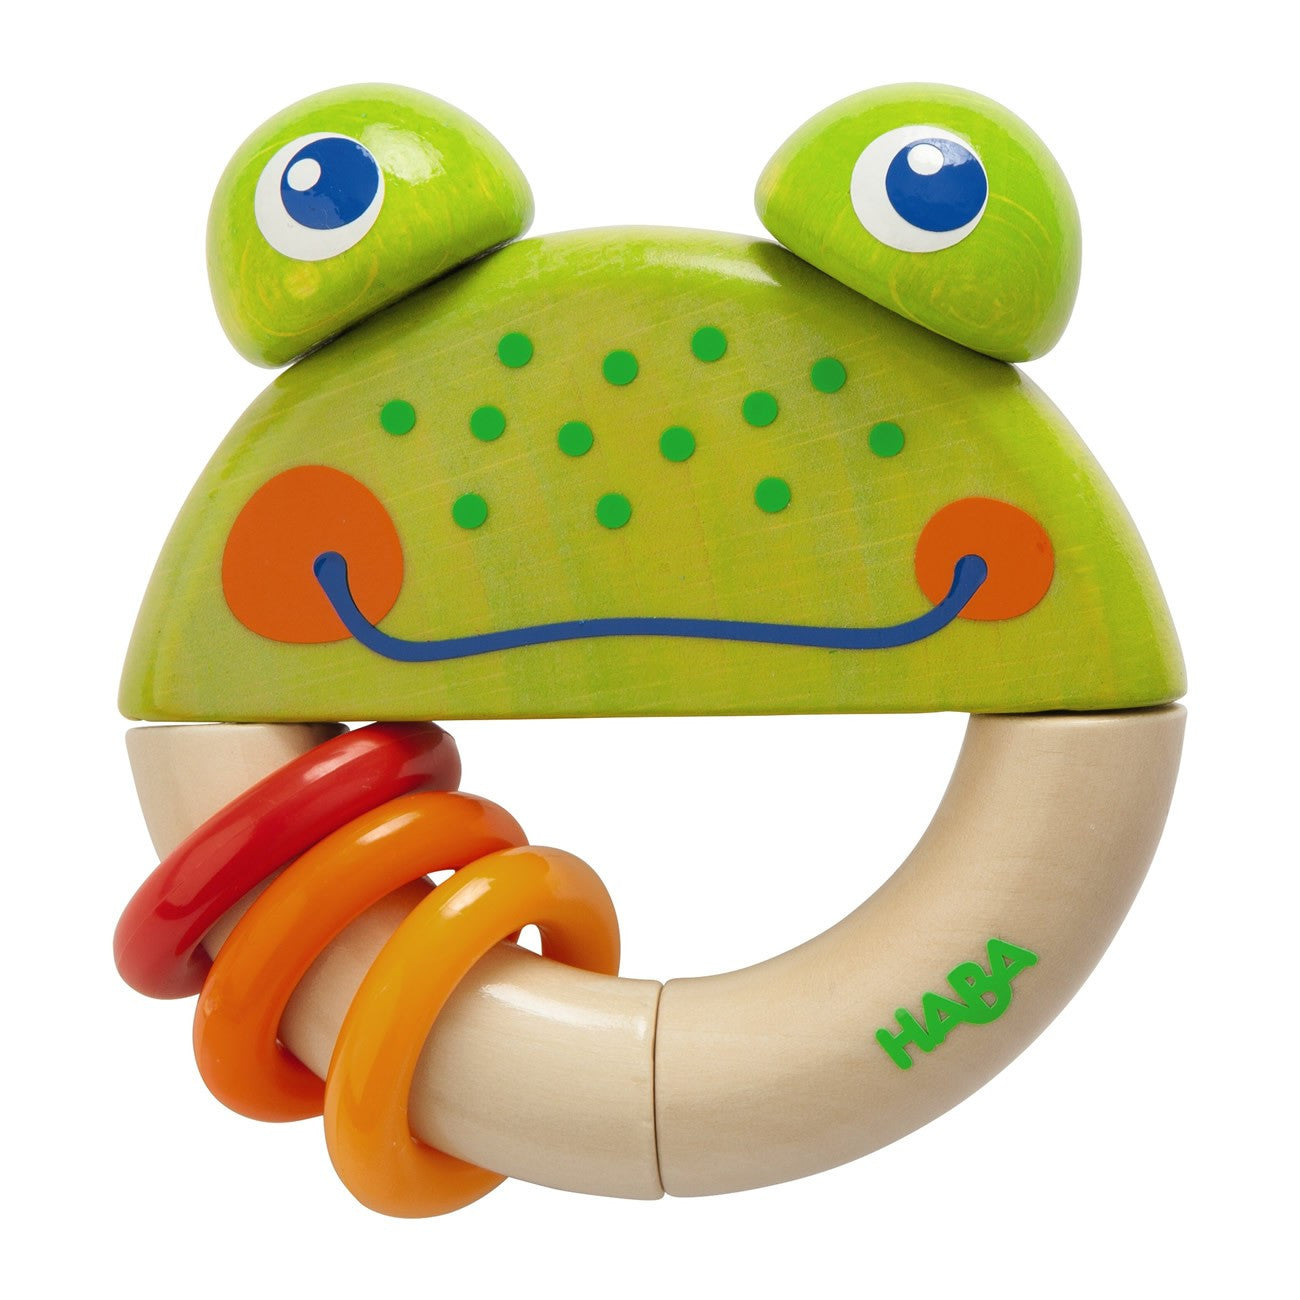 Haba Clutching Toy Frog